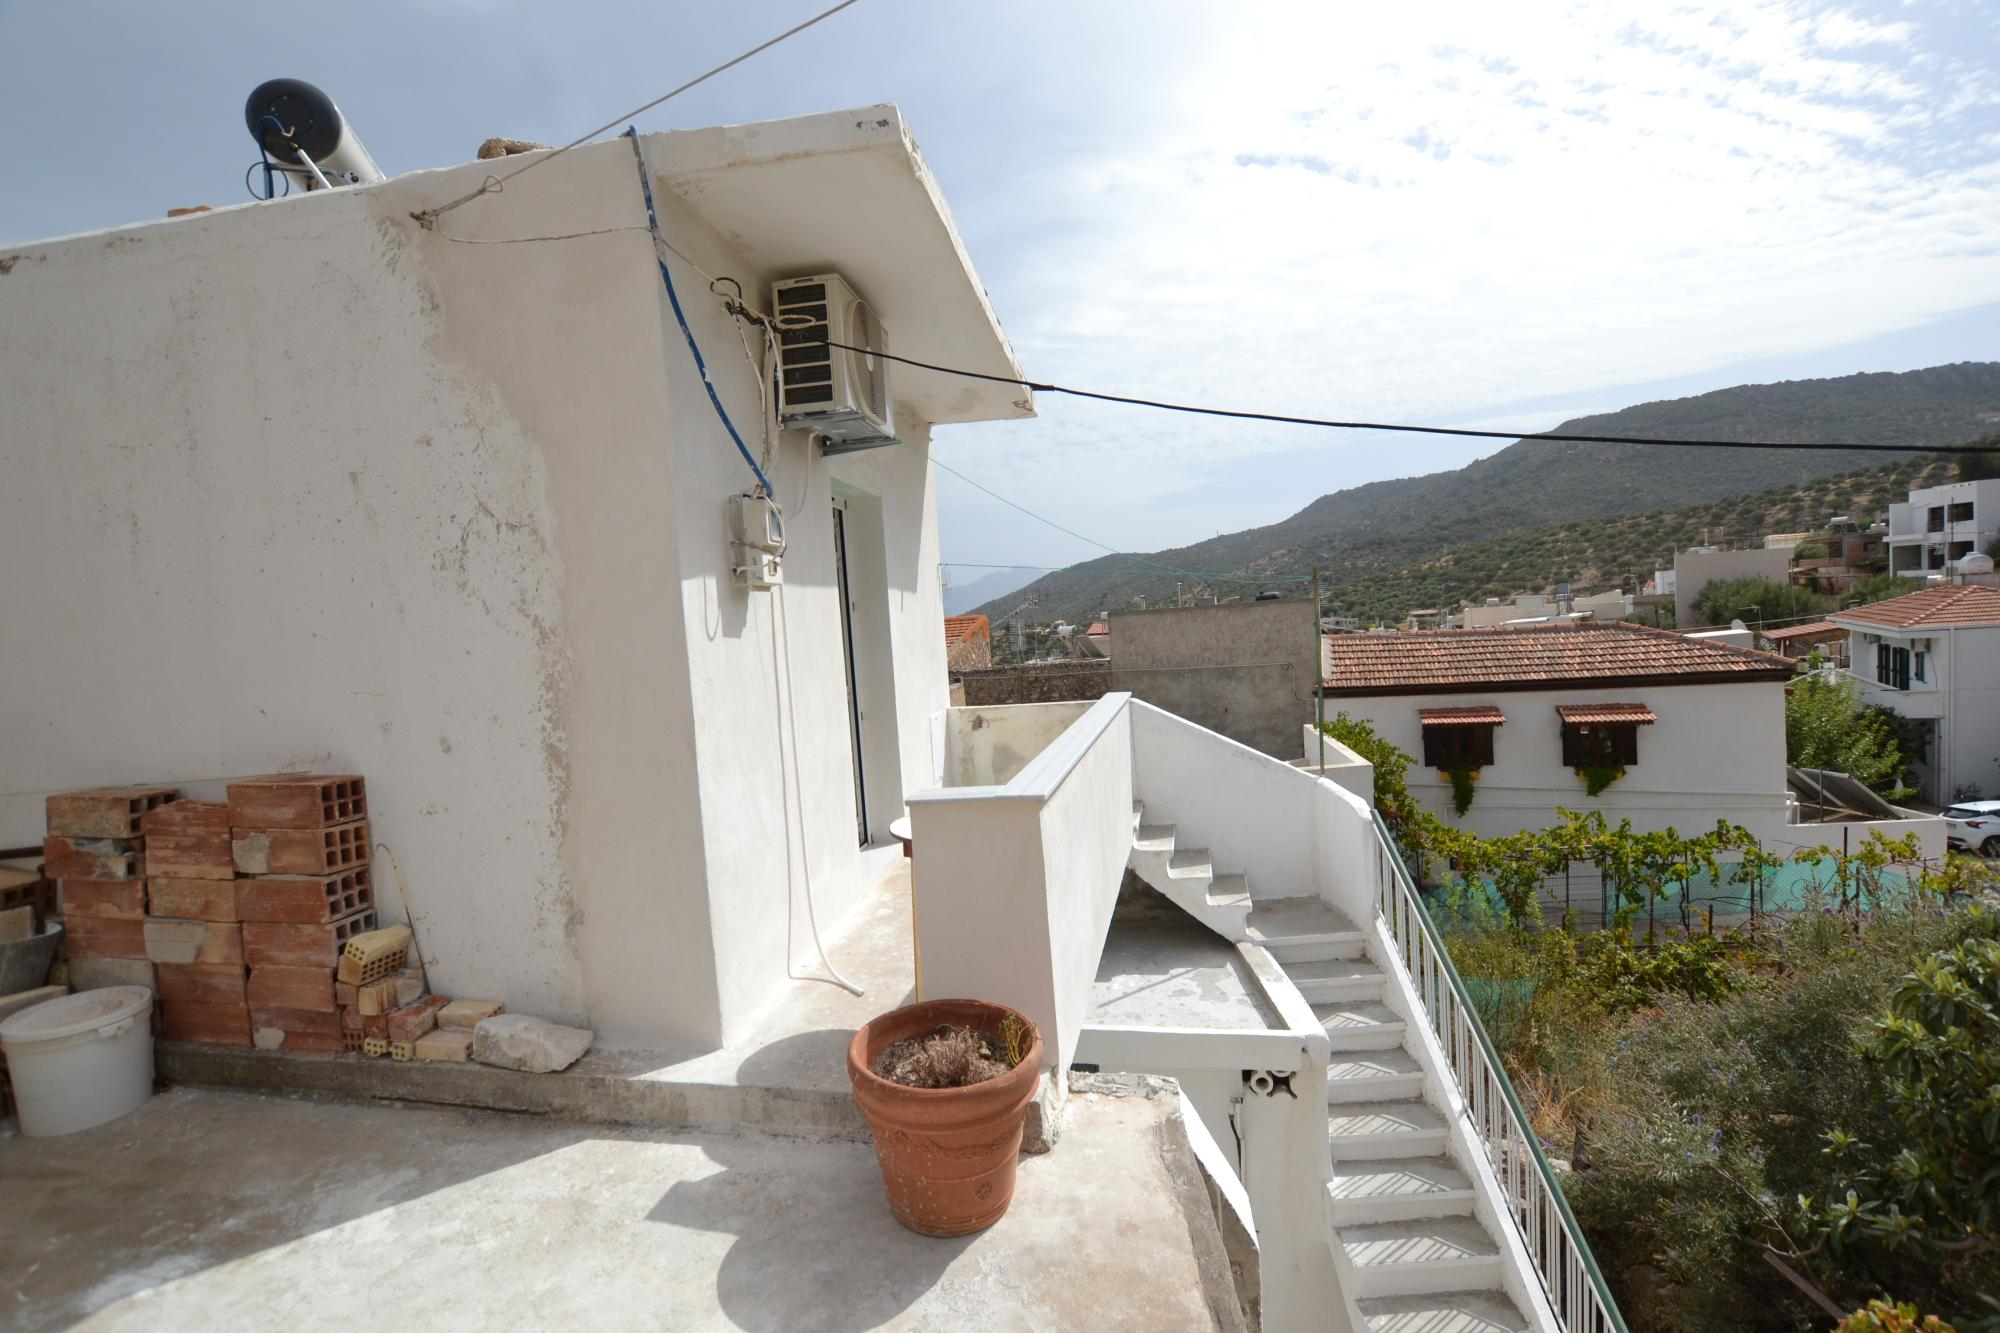 1 or 2 bed house within short walk to the center of Kritsa. Parking nearby.